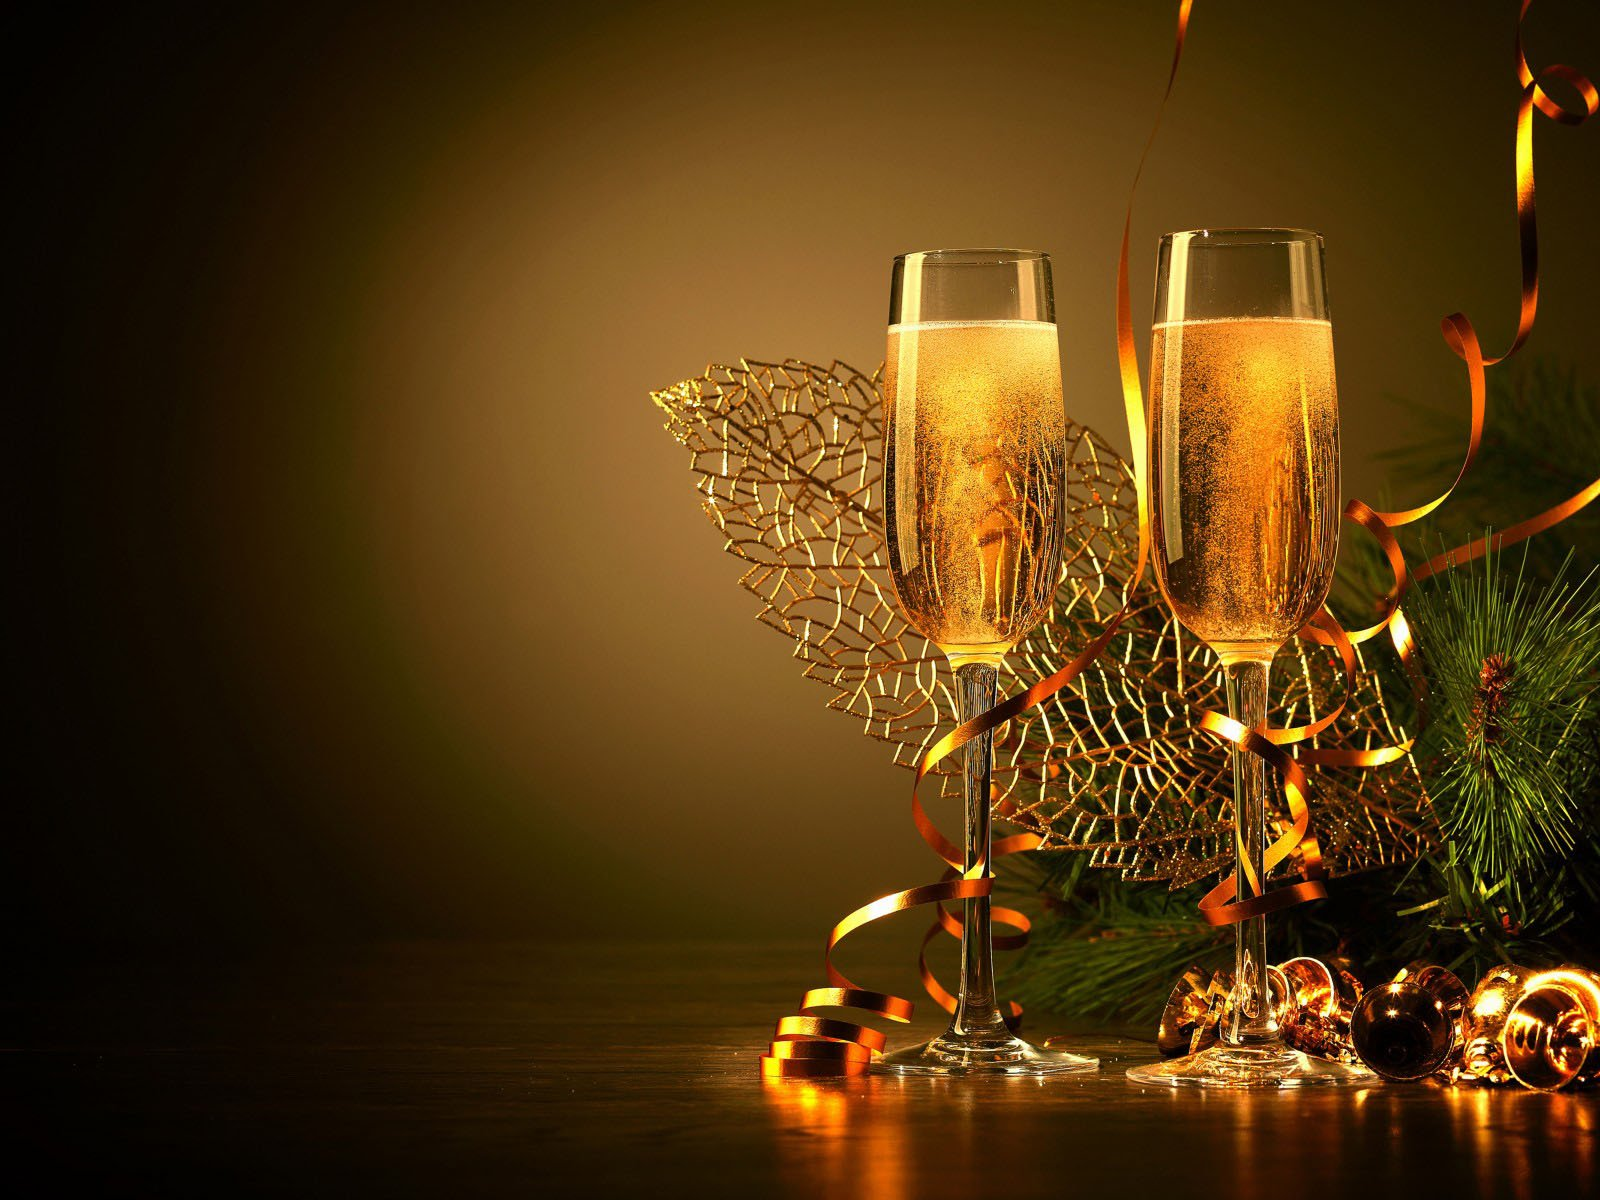 48] Happy New Year 2015 Pc Wallpaper on WallpaperSafari 1600x1200